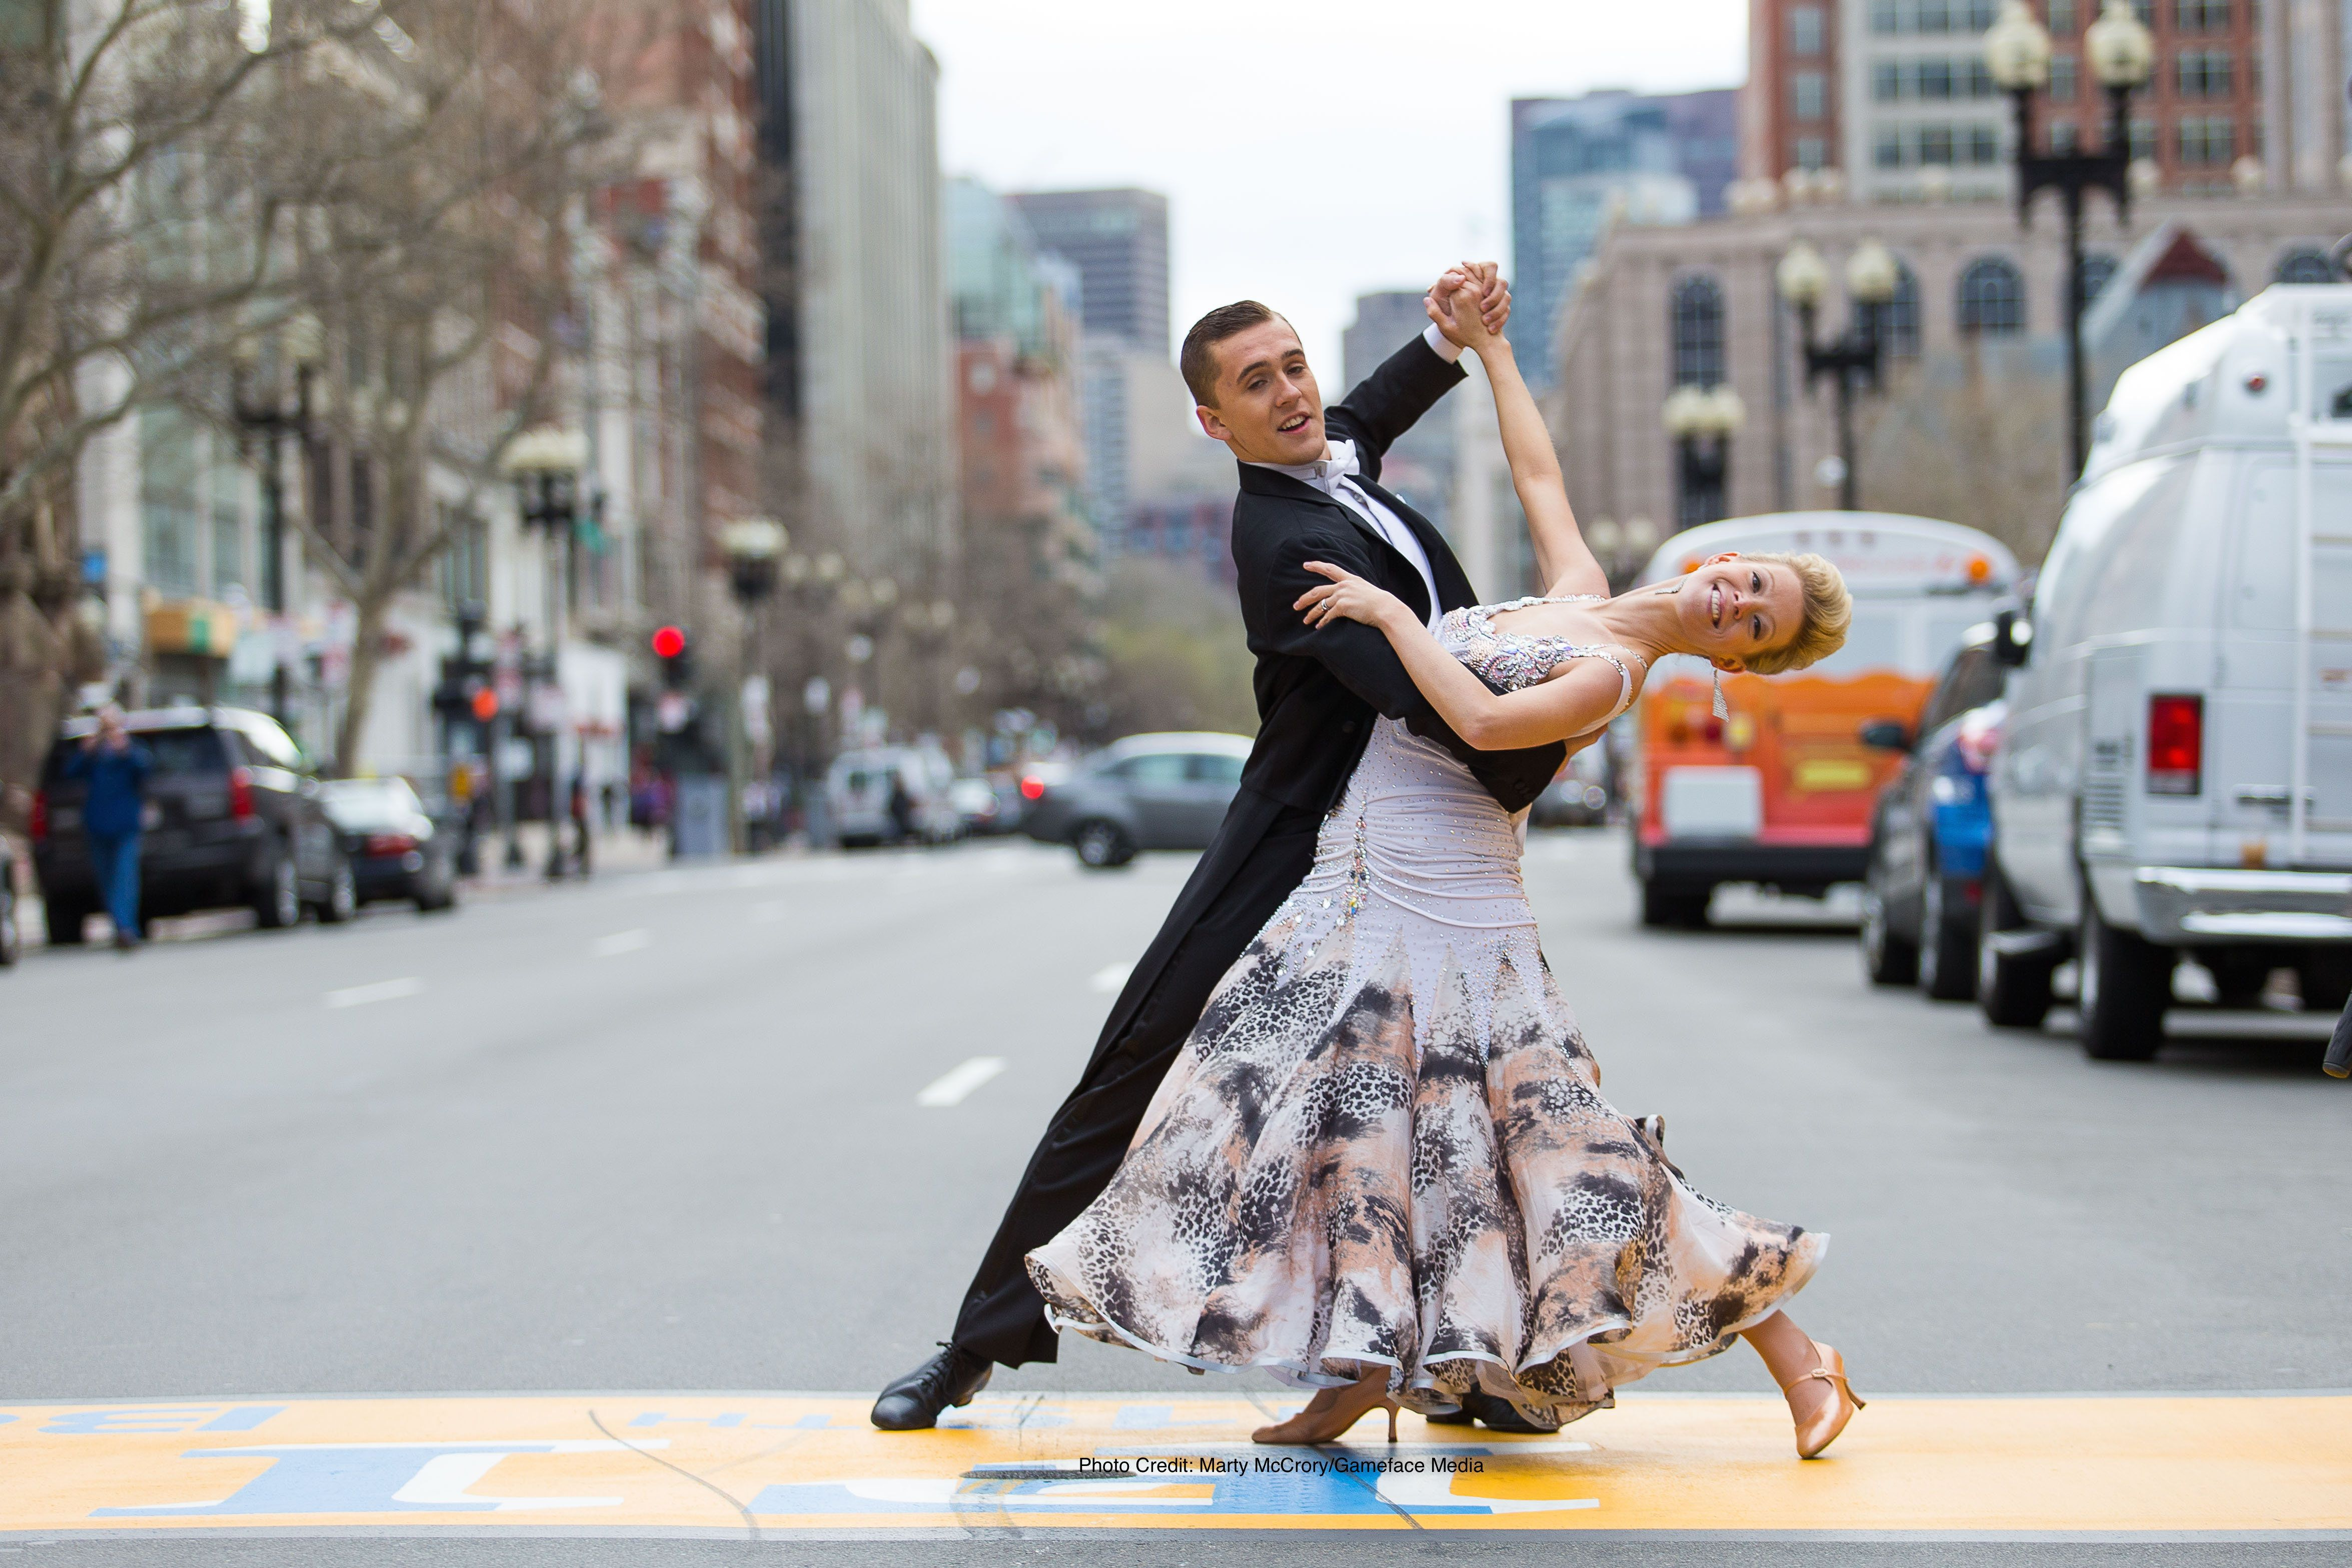 Haslet-Davis danced over the Boston Marathon finish line as part of the